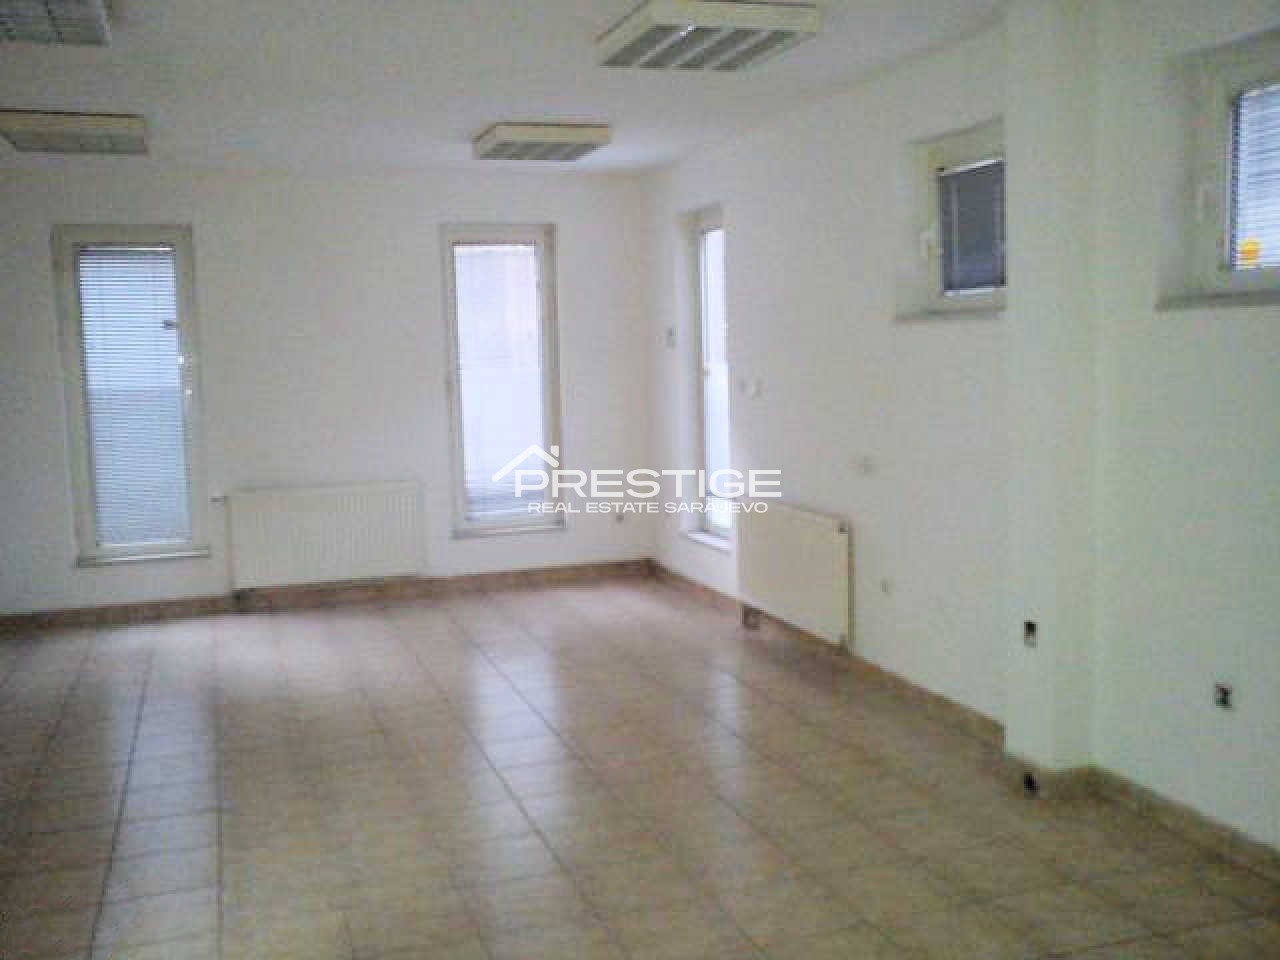 Commercial property Centar 7860